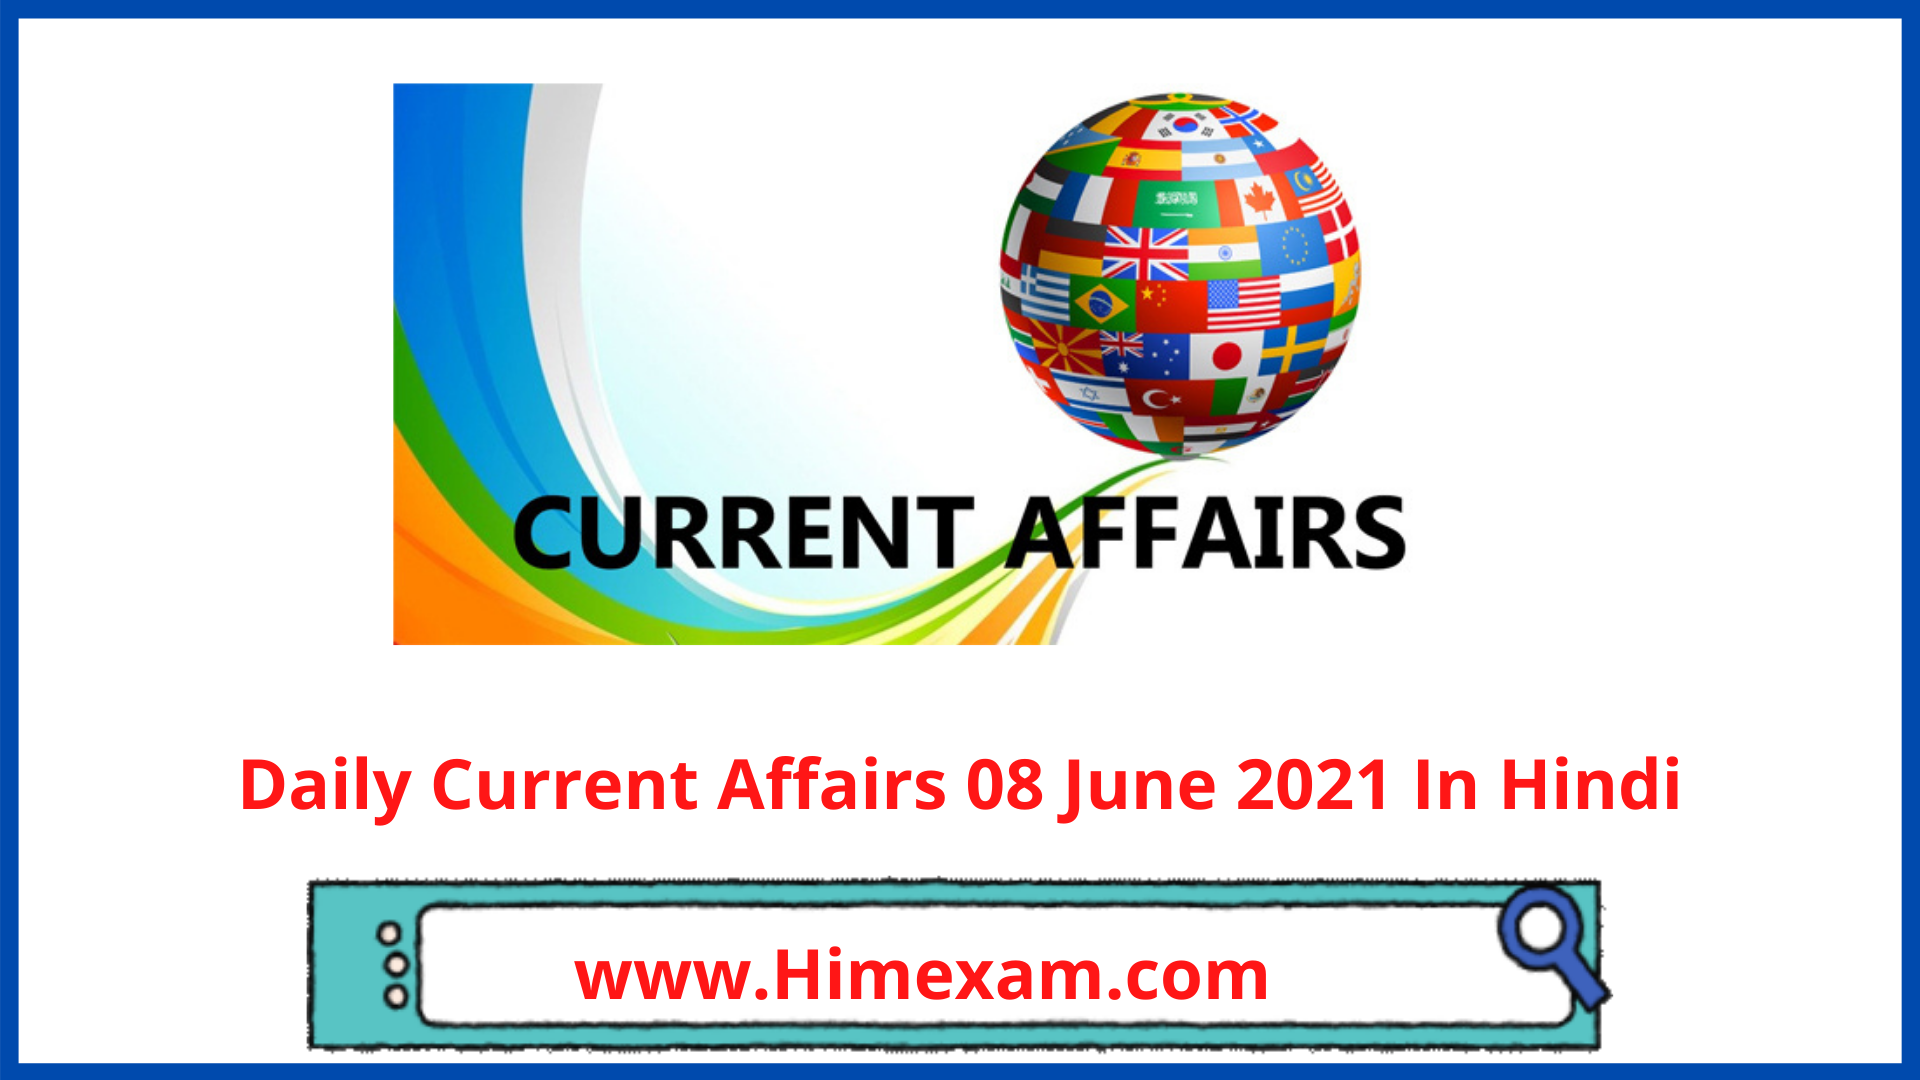 Daily Current Affairs 08 June 2021 In Hindi